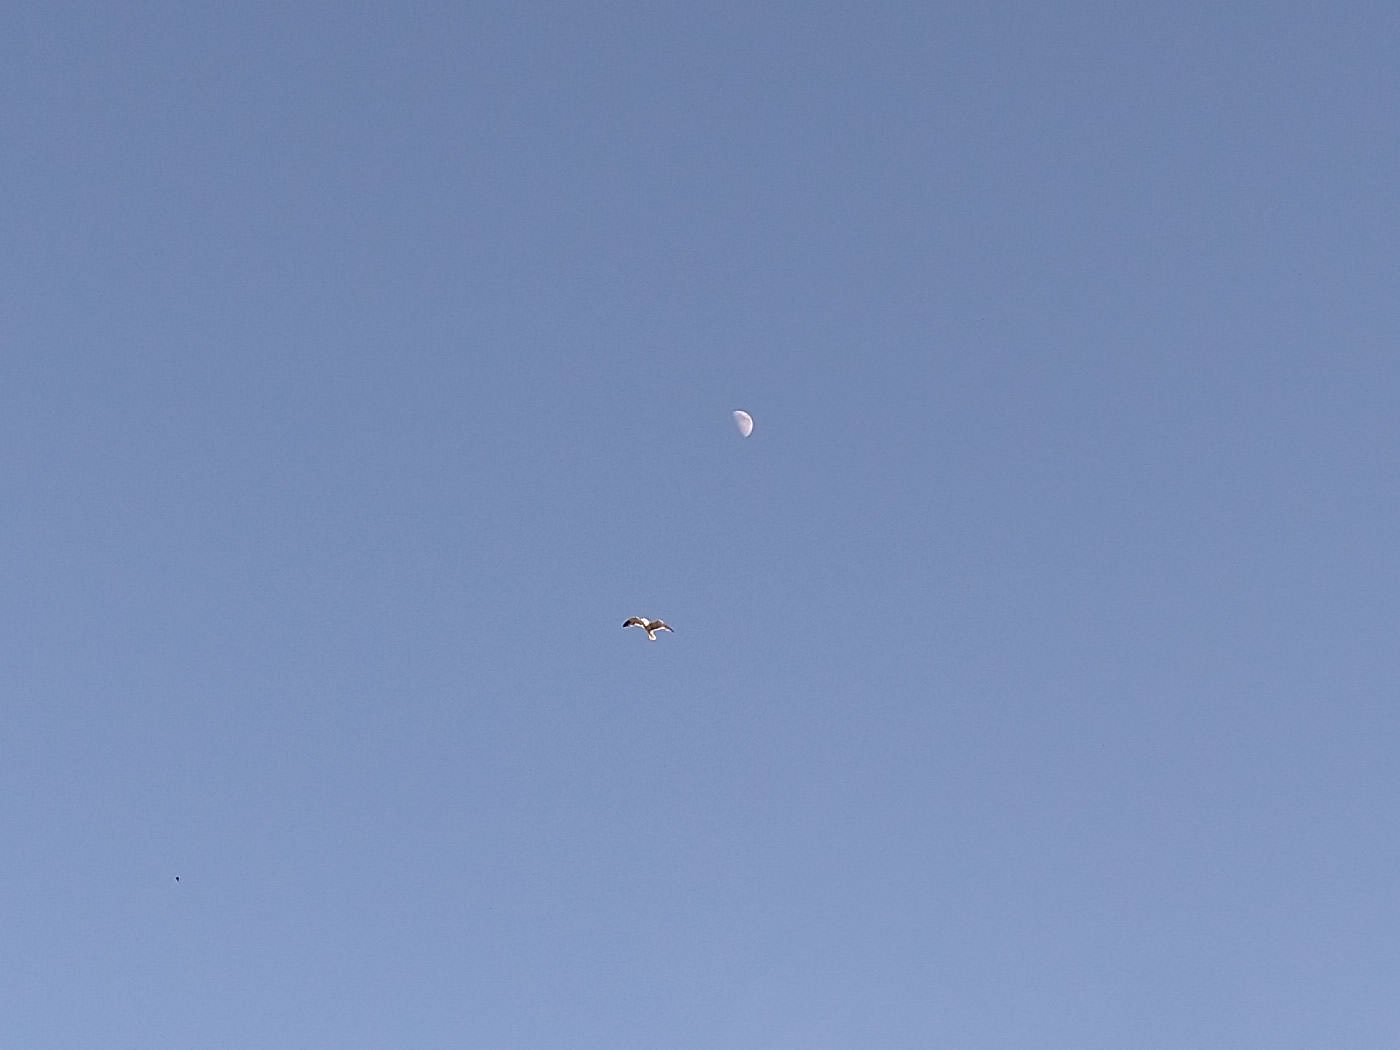 A seagull soaring high in a clear blue sky, pictured by the moon